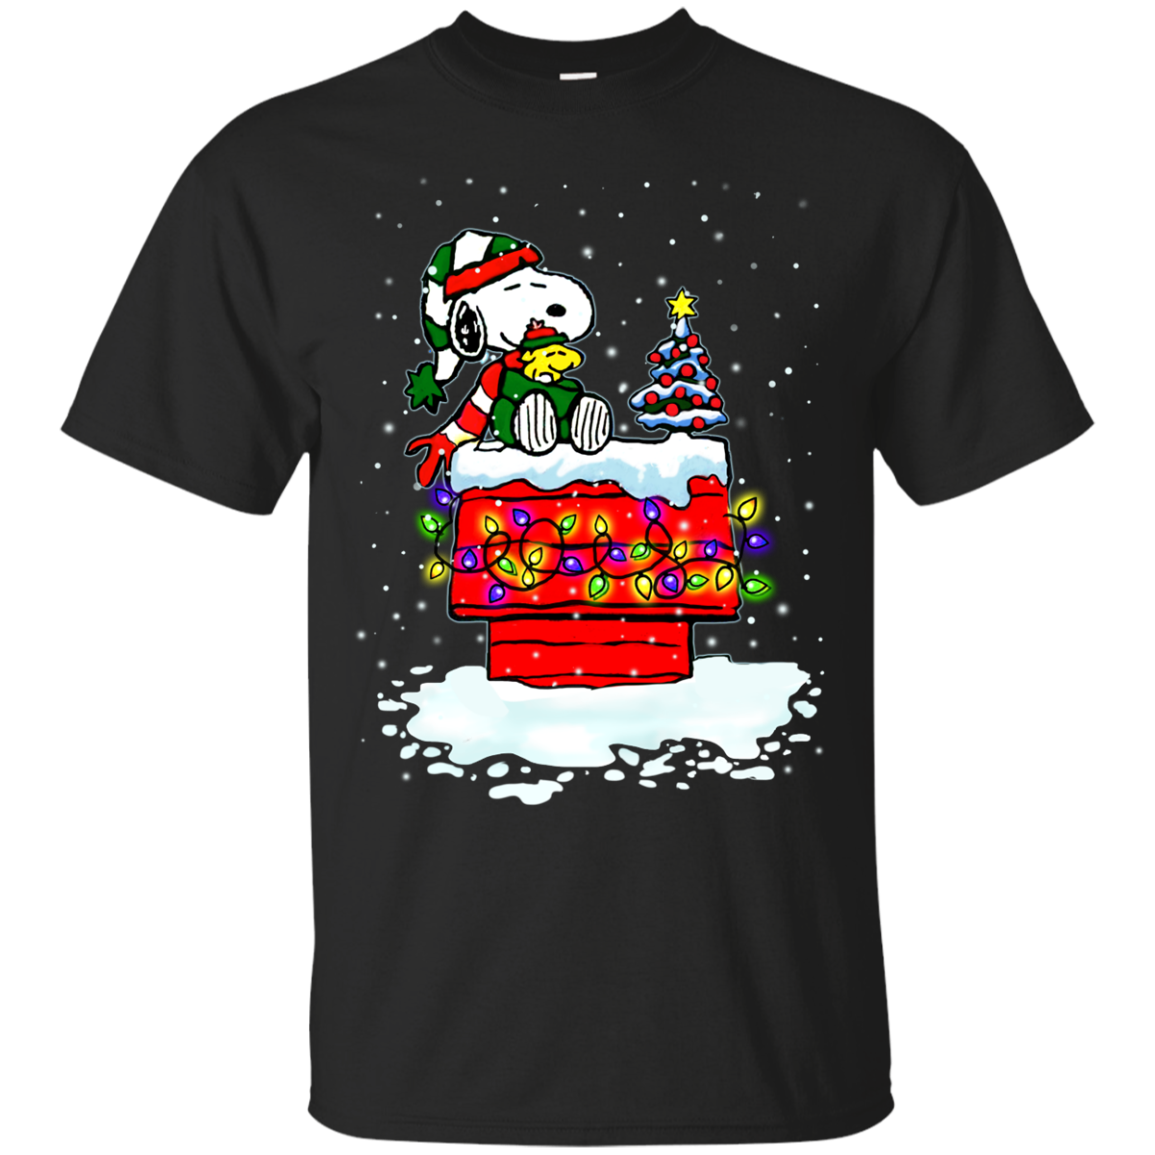 snoopy christmas lights - Snoopy Christmas Shirt